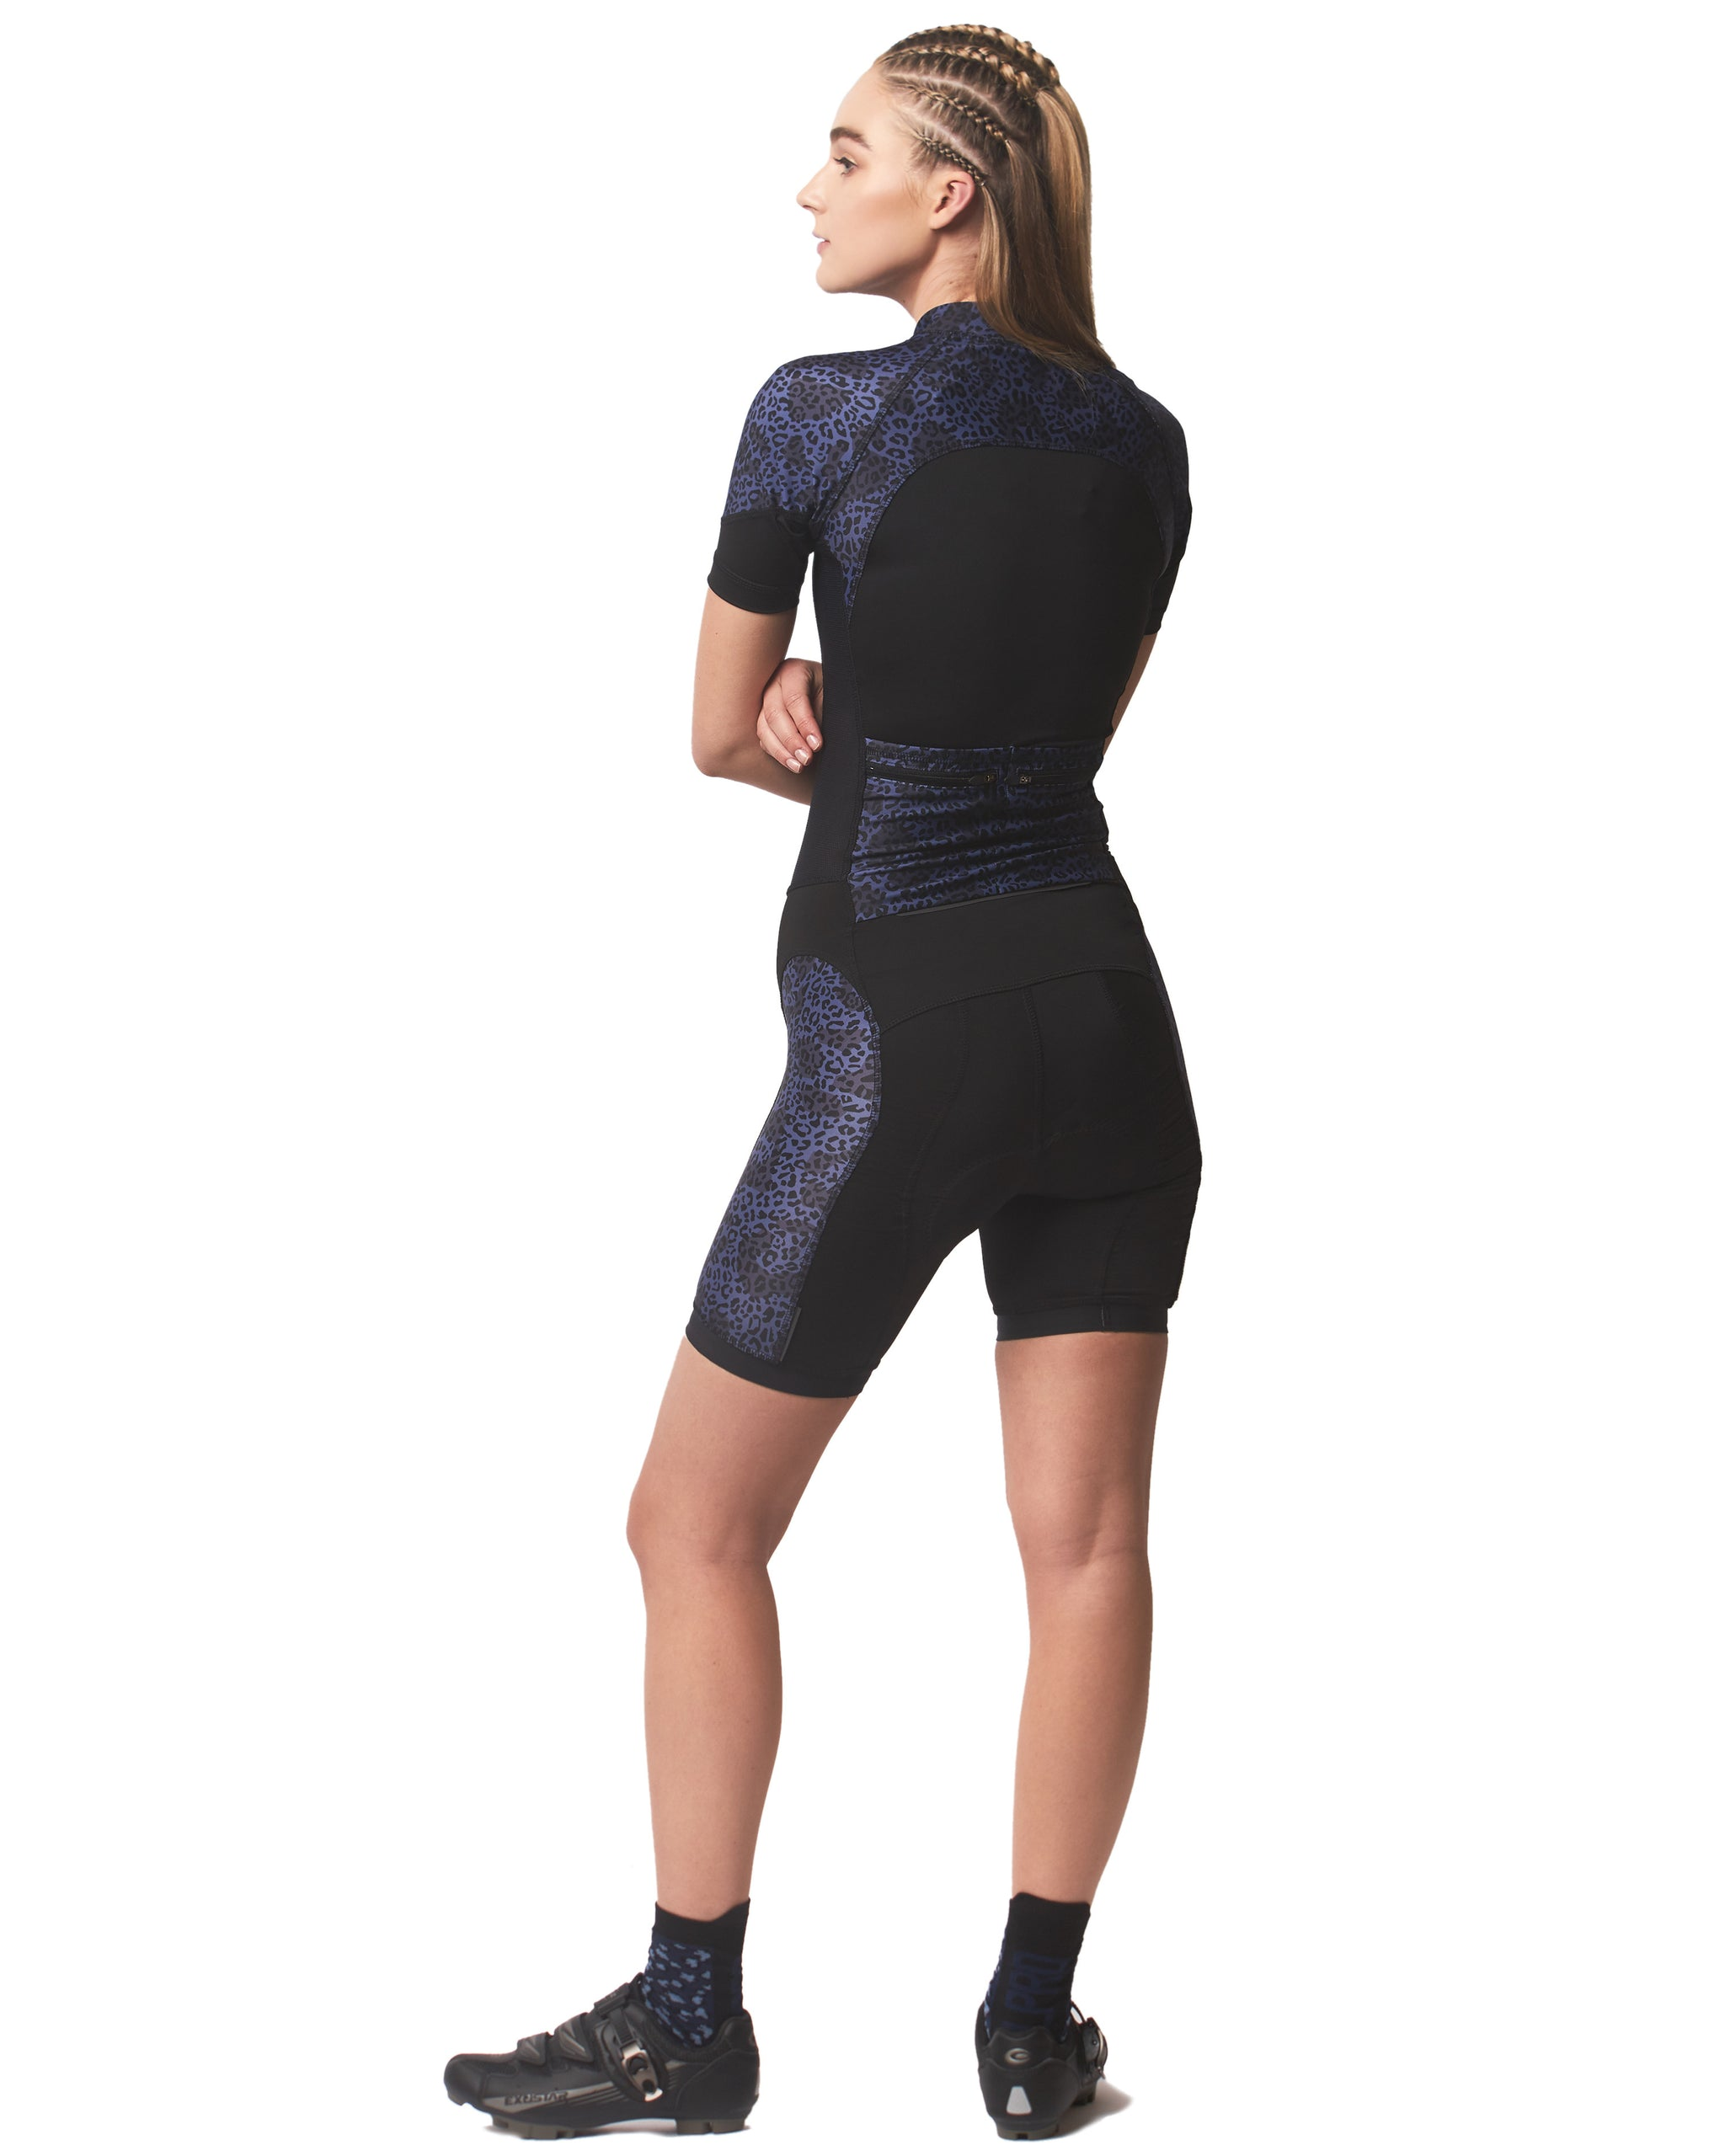 LPRD Midnight Leopard Panel Cycling Skinsuit | Side View